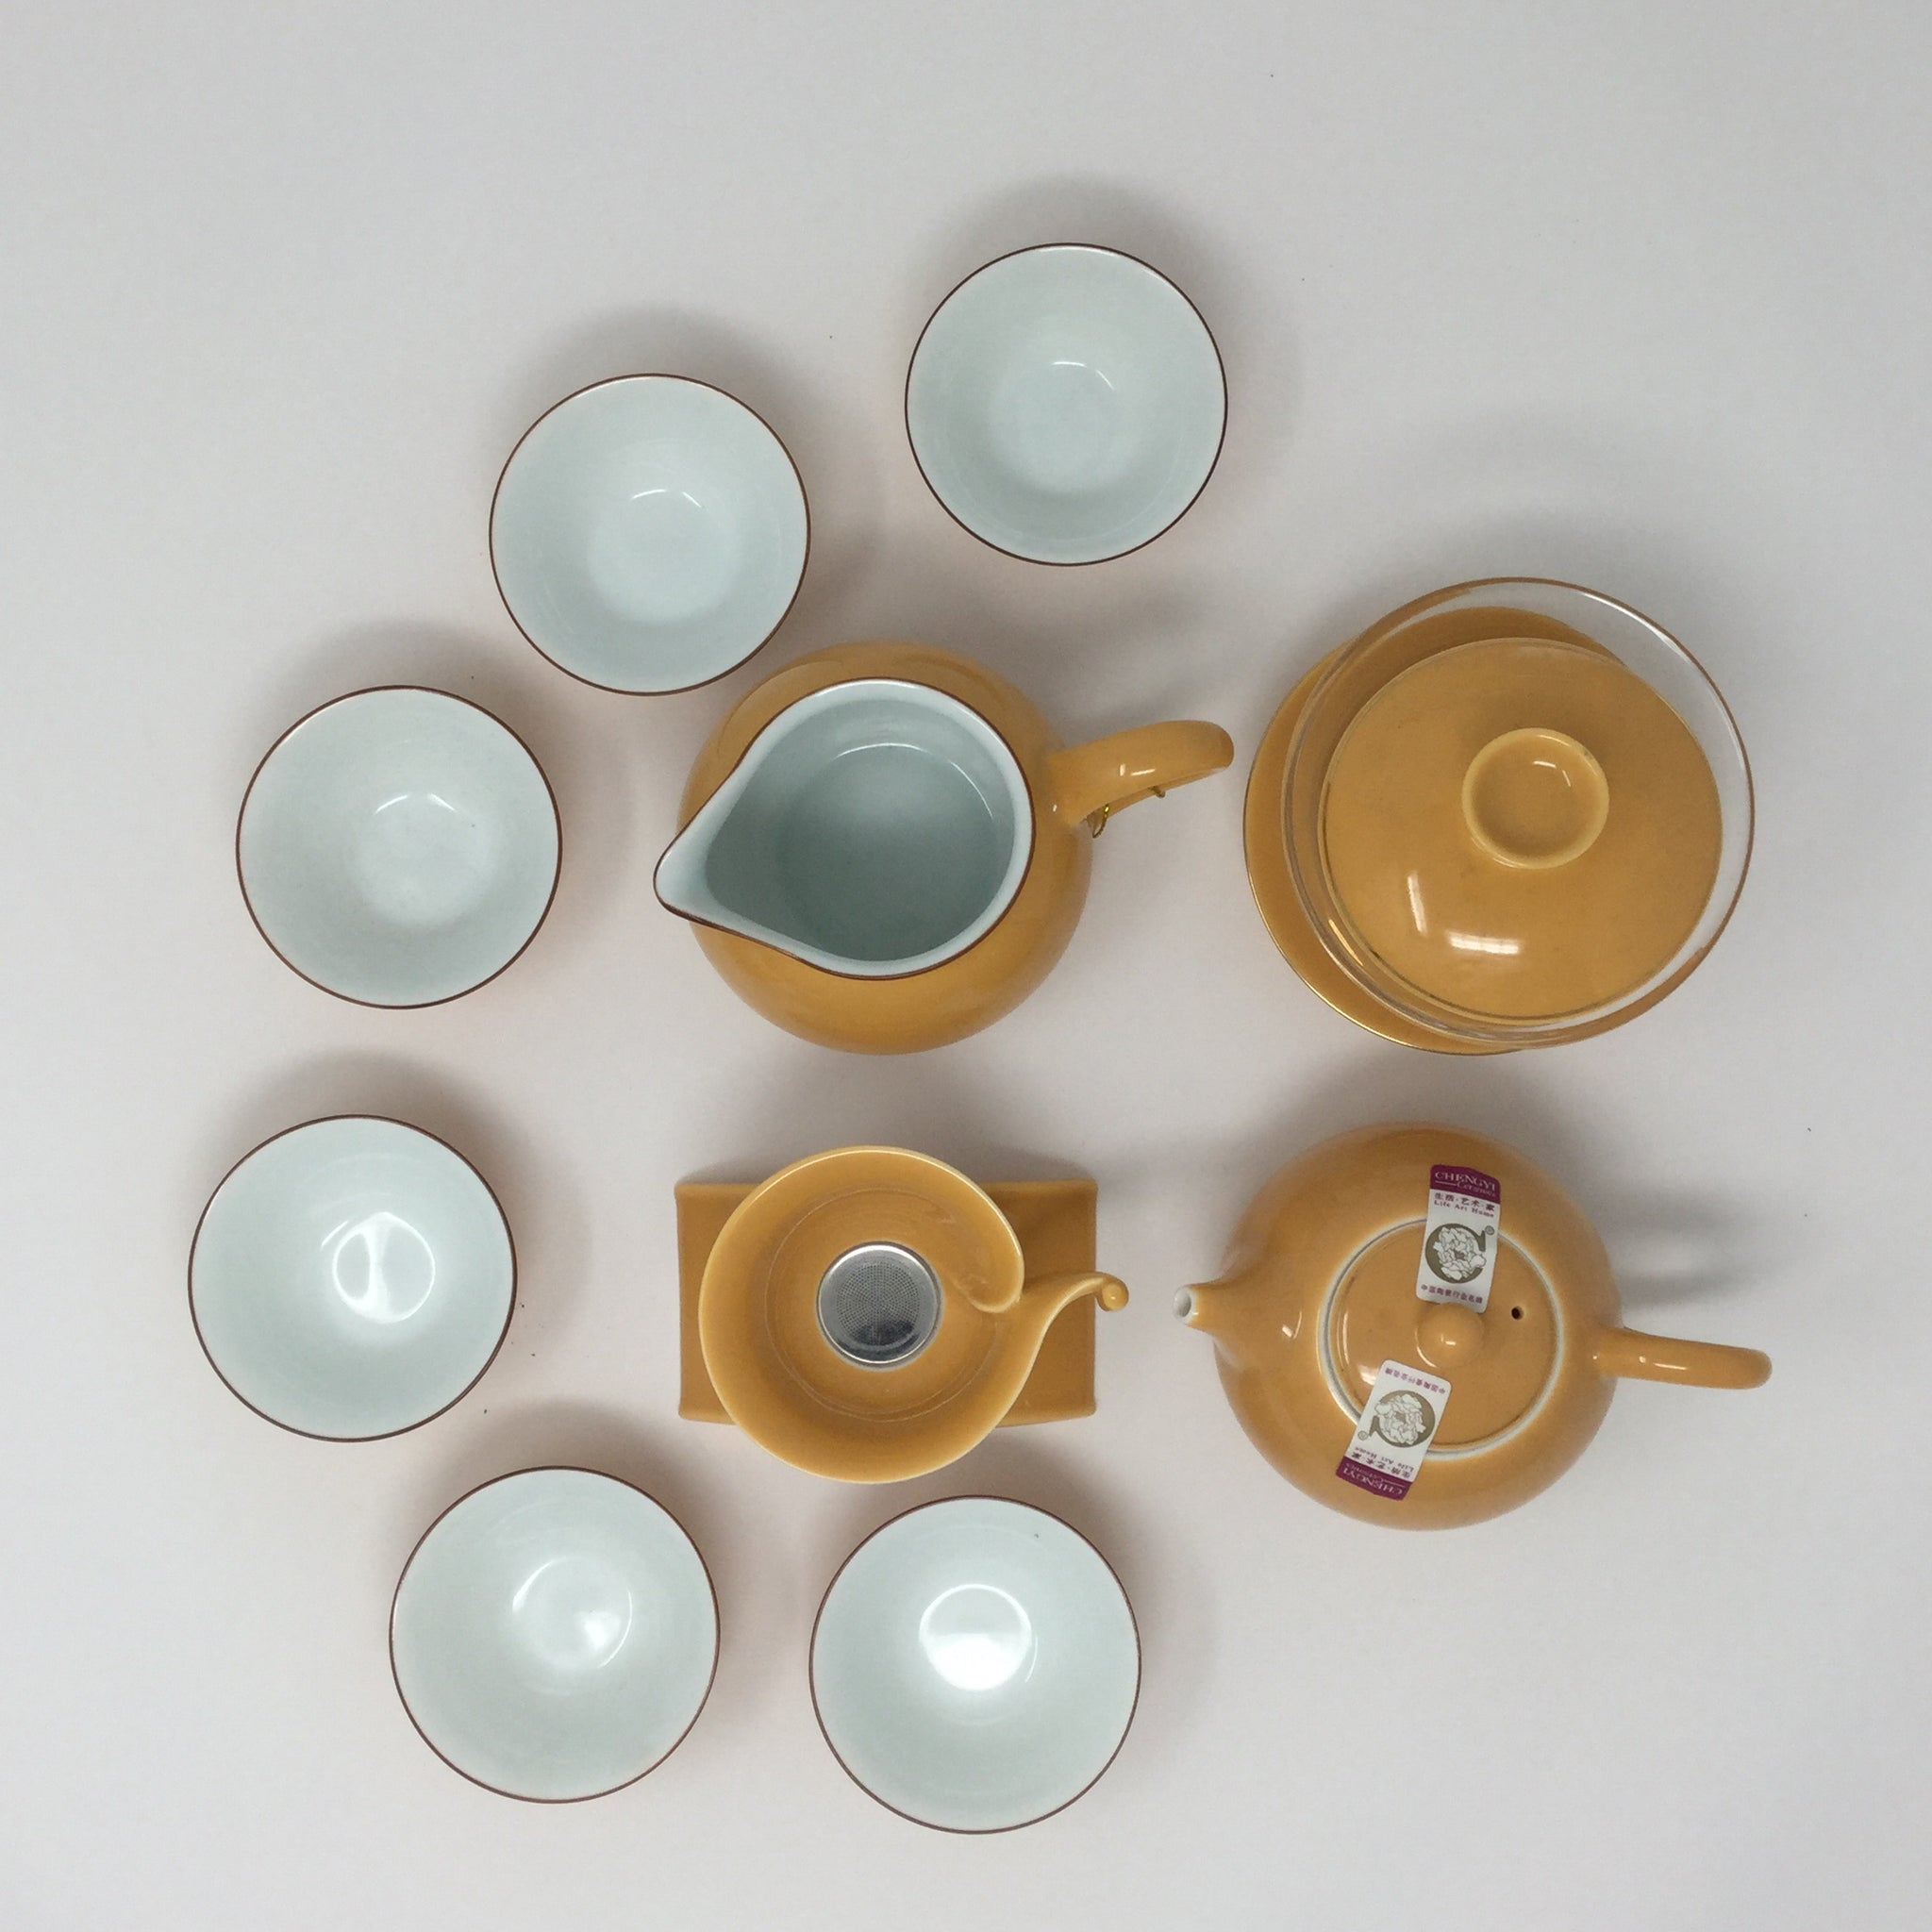 Gaiwan Porcelain Tea set 03